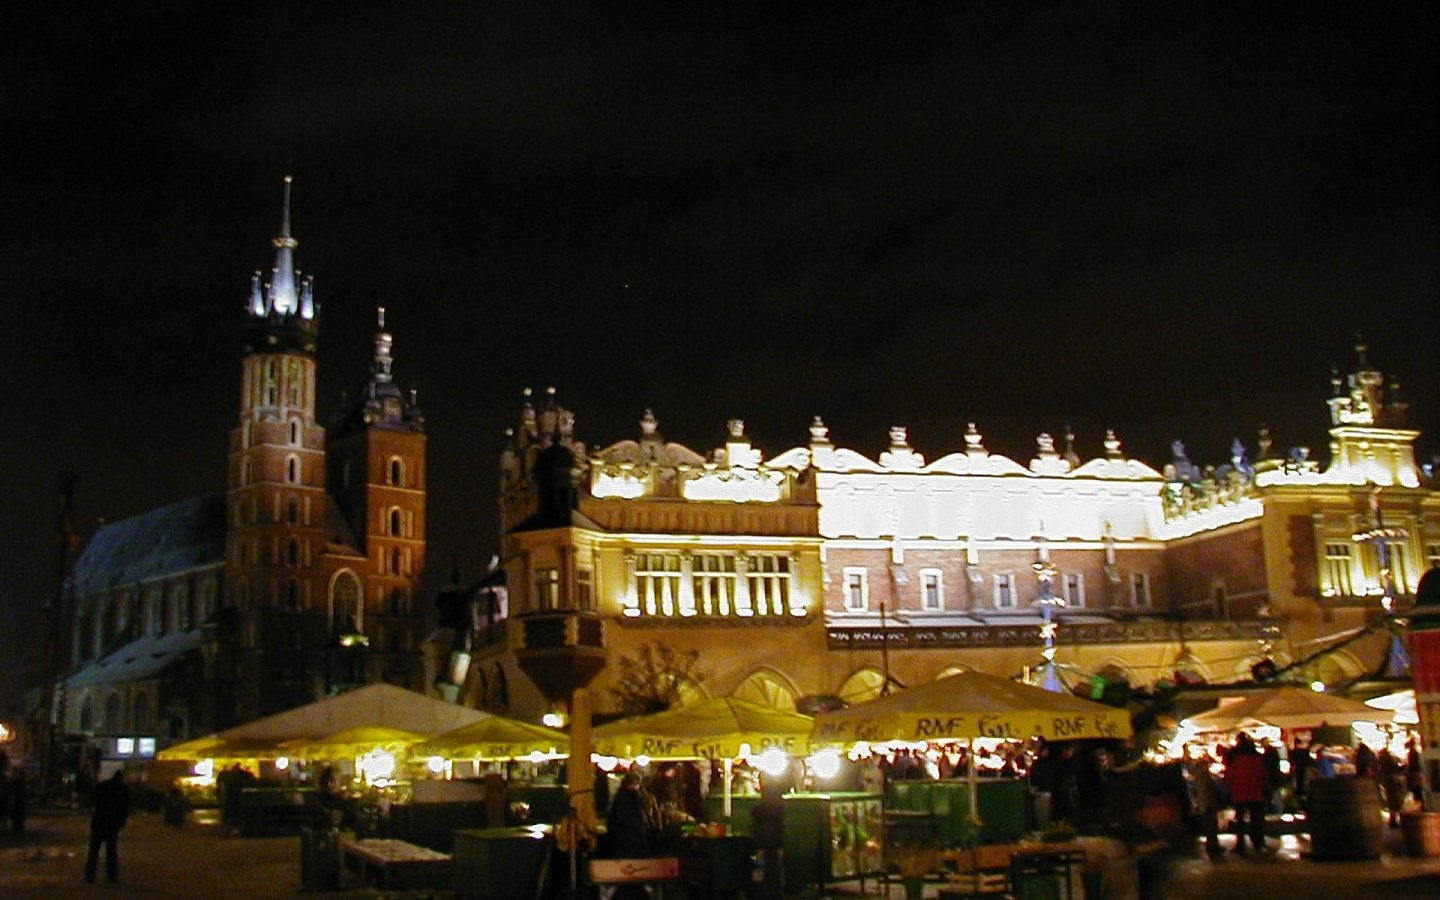 Krakow ChristmasMarket 1440x900 WallpapersKrakow 1440x900 1440x900